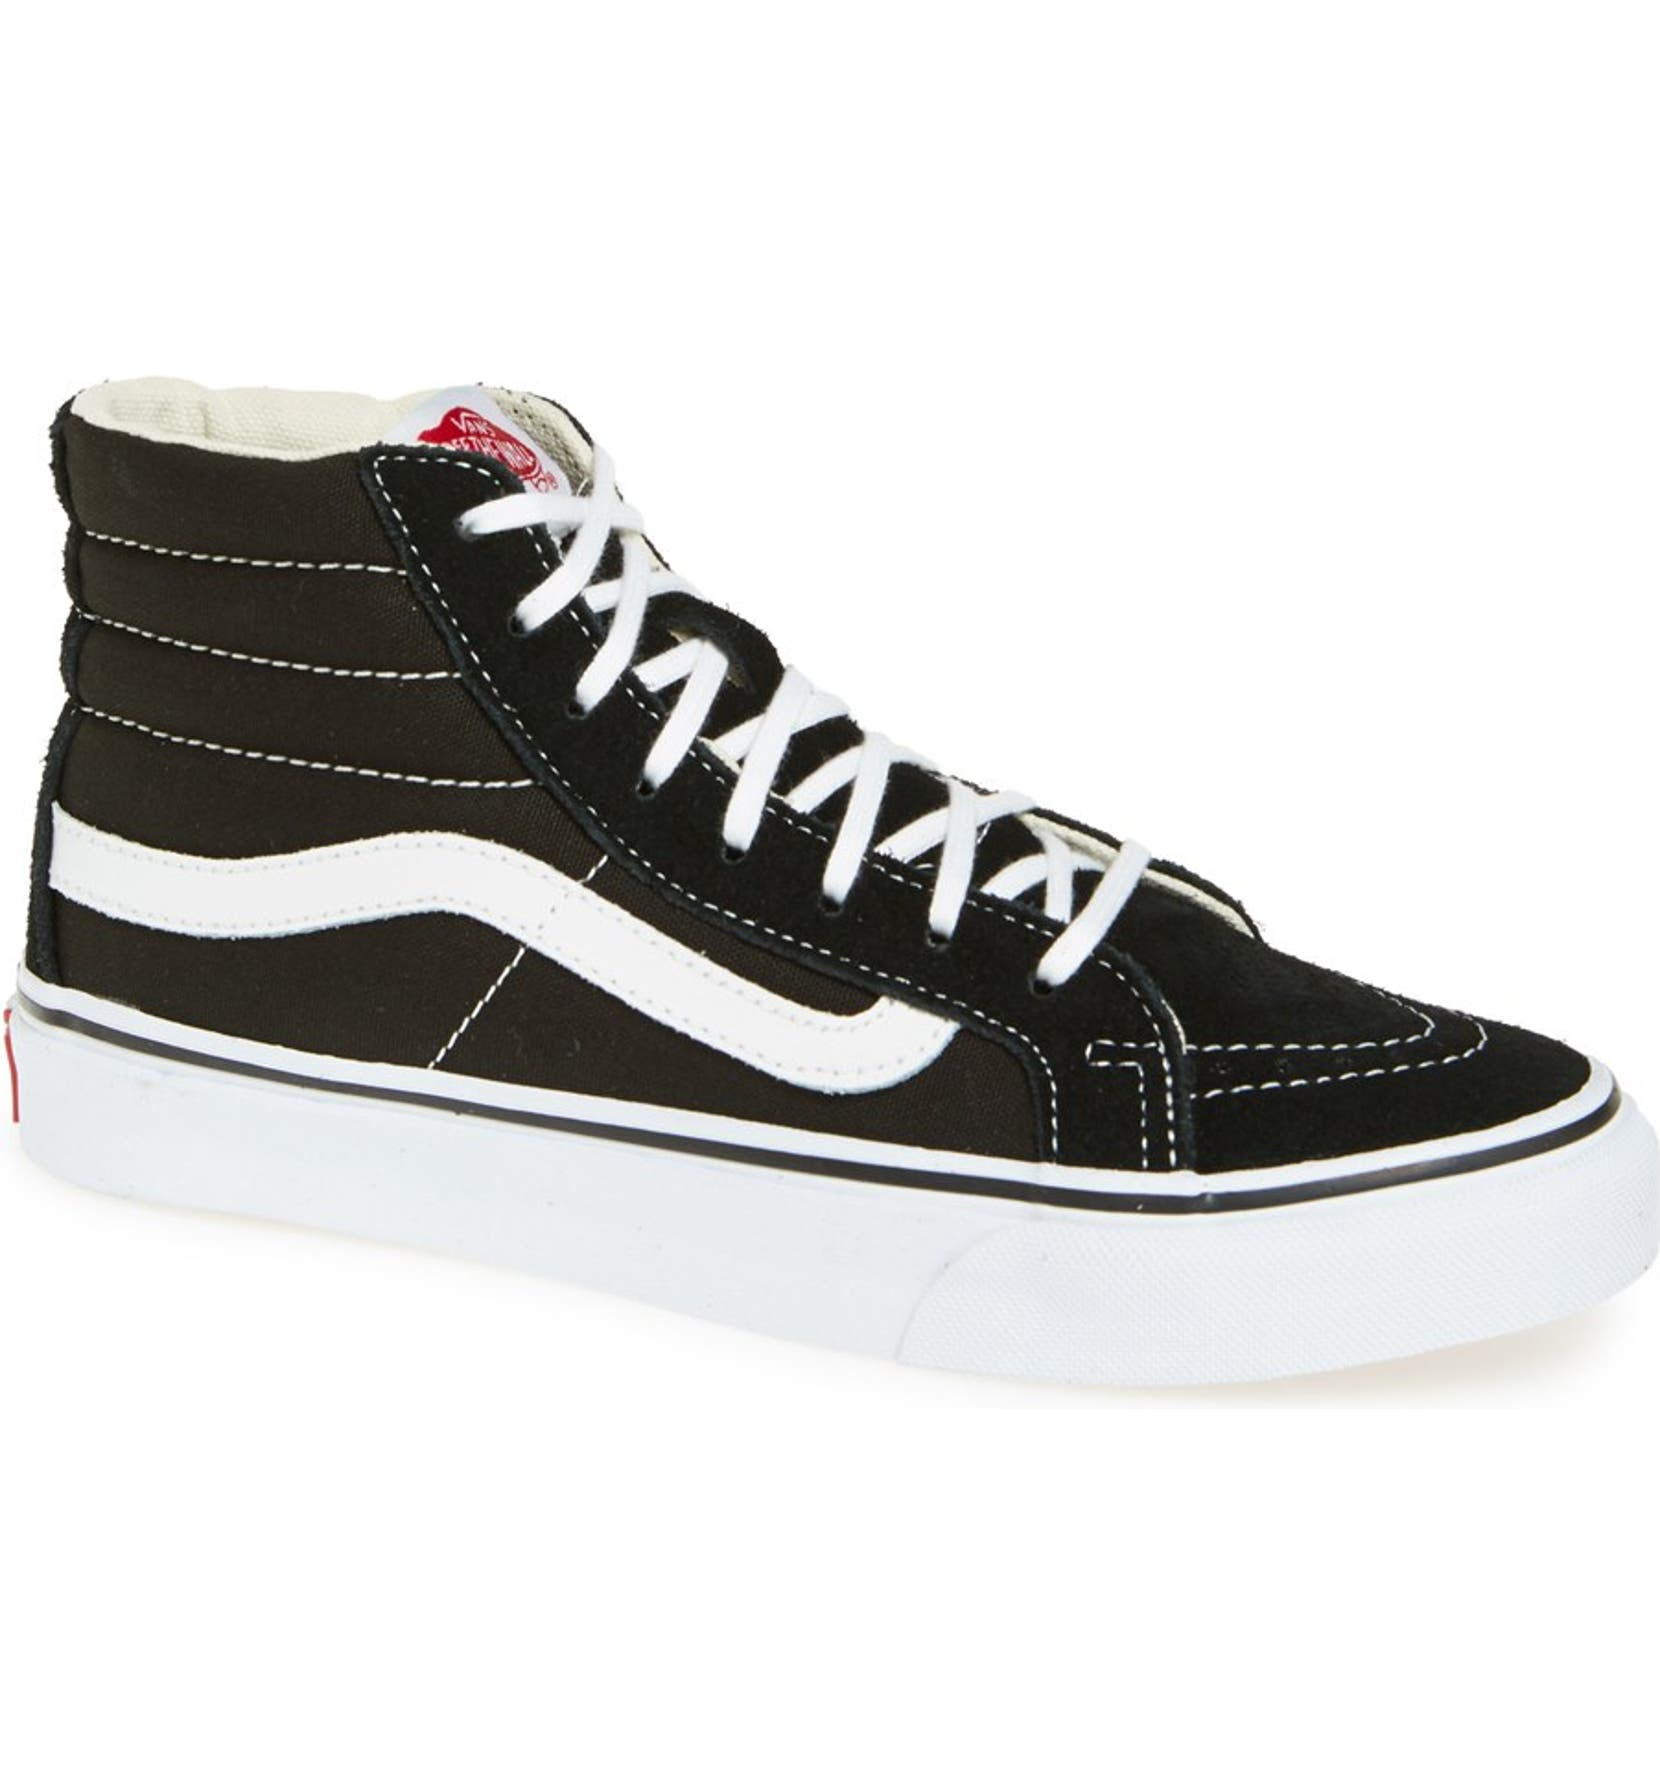 5c1029733 Vans Sk8-Hi Slim High Top Sneaker (Women)